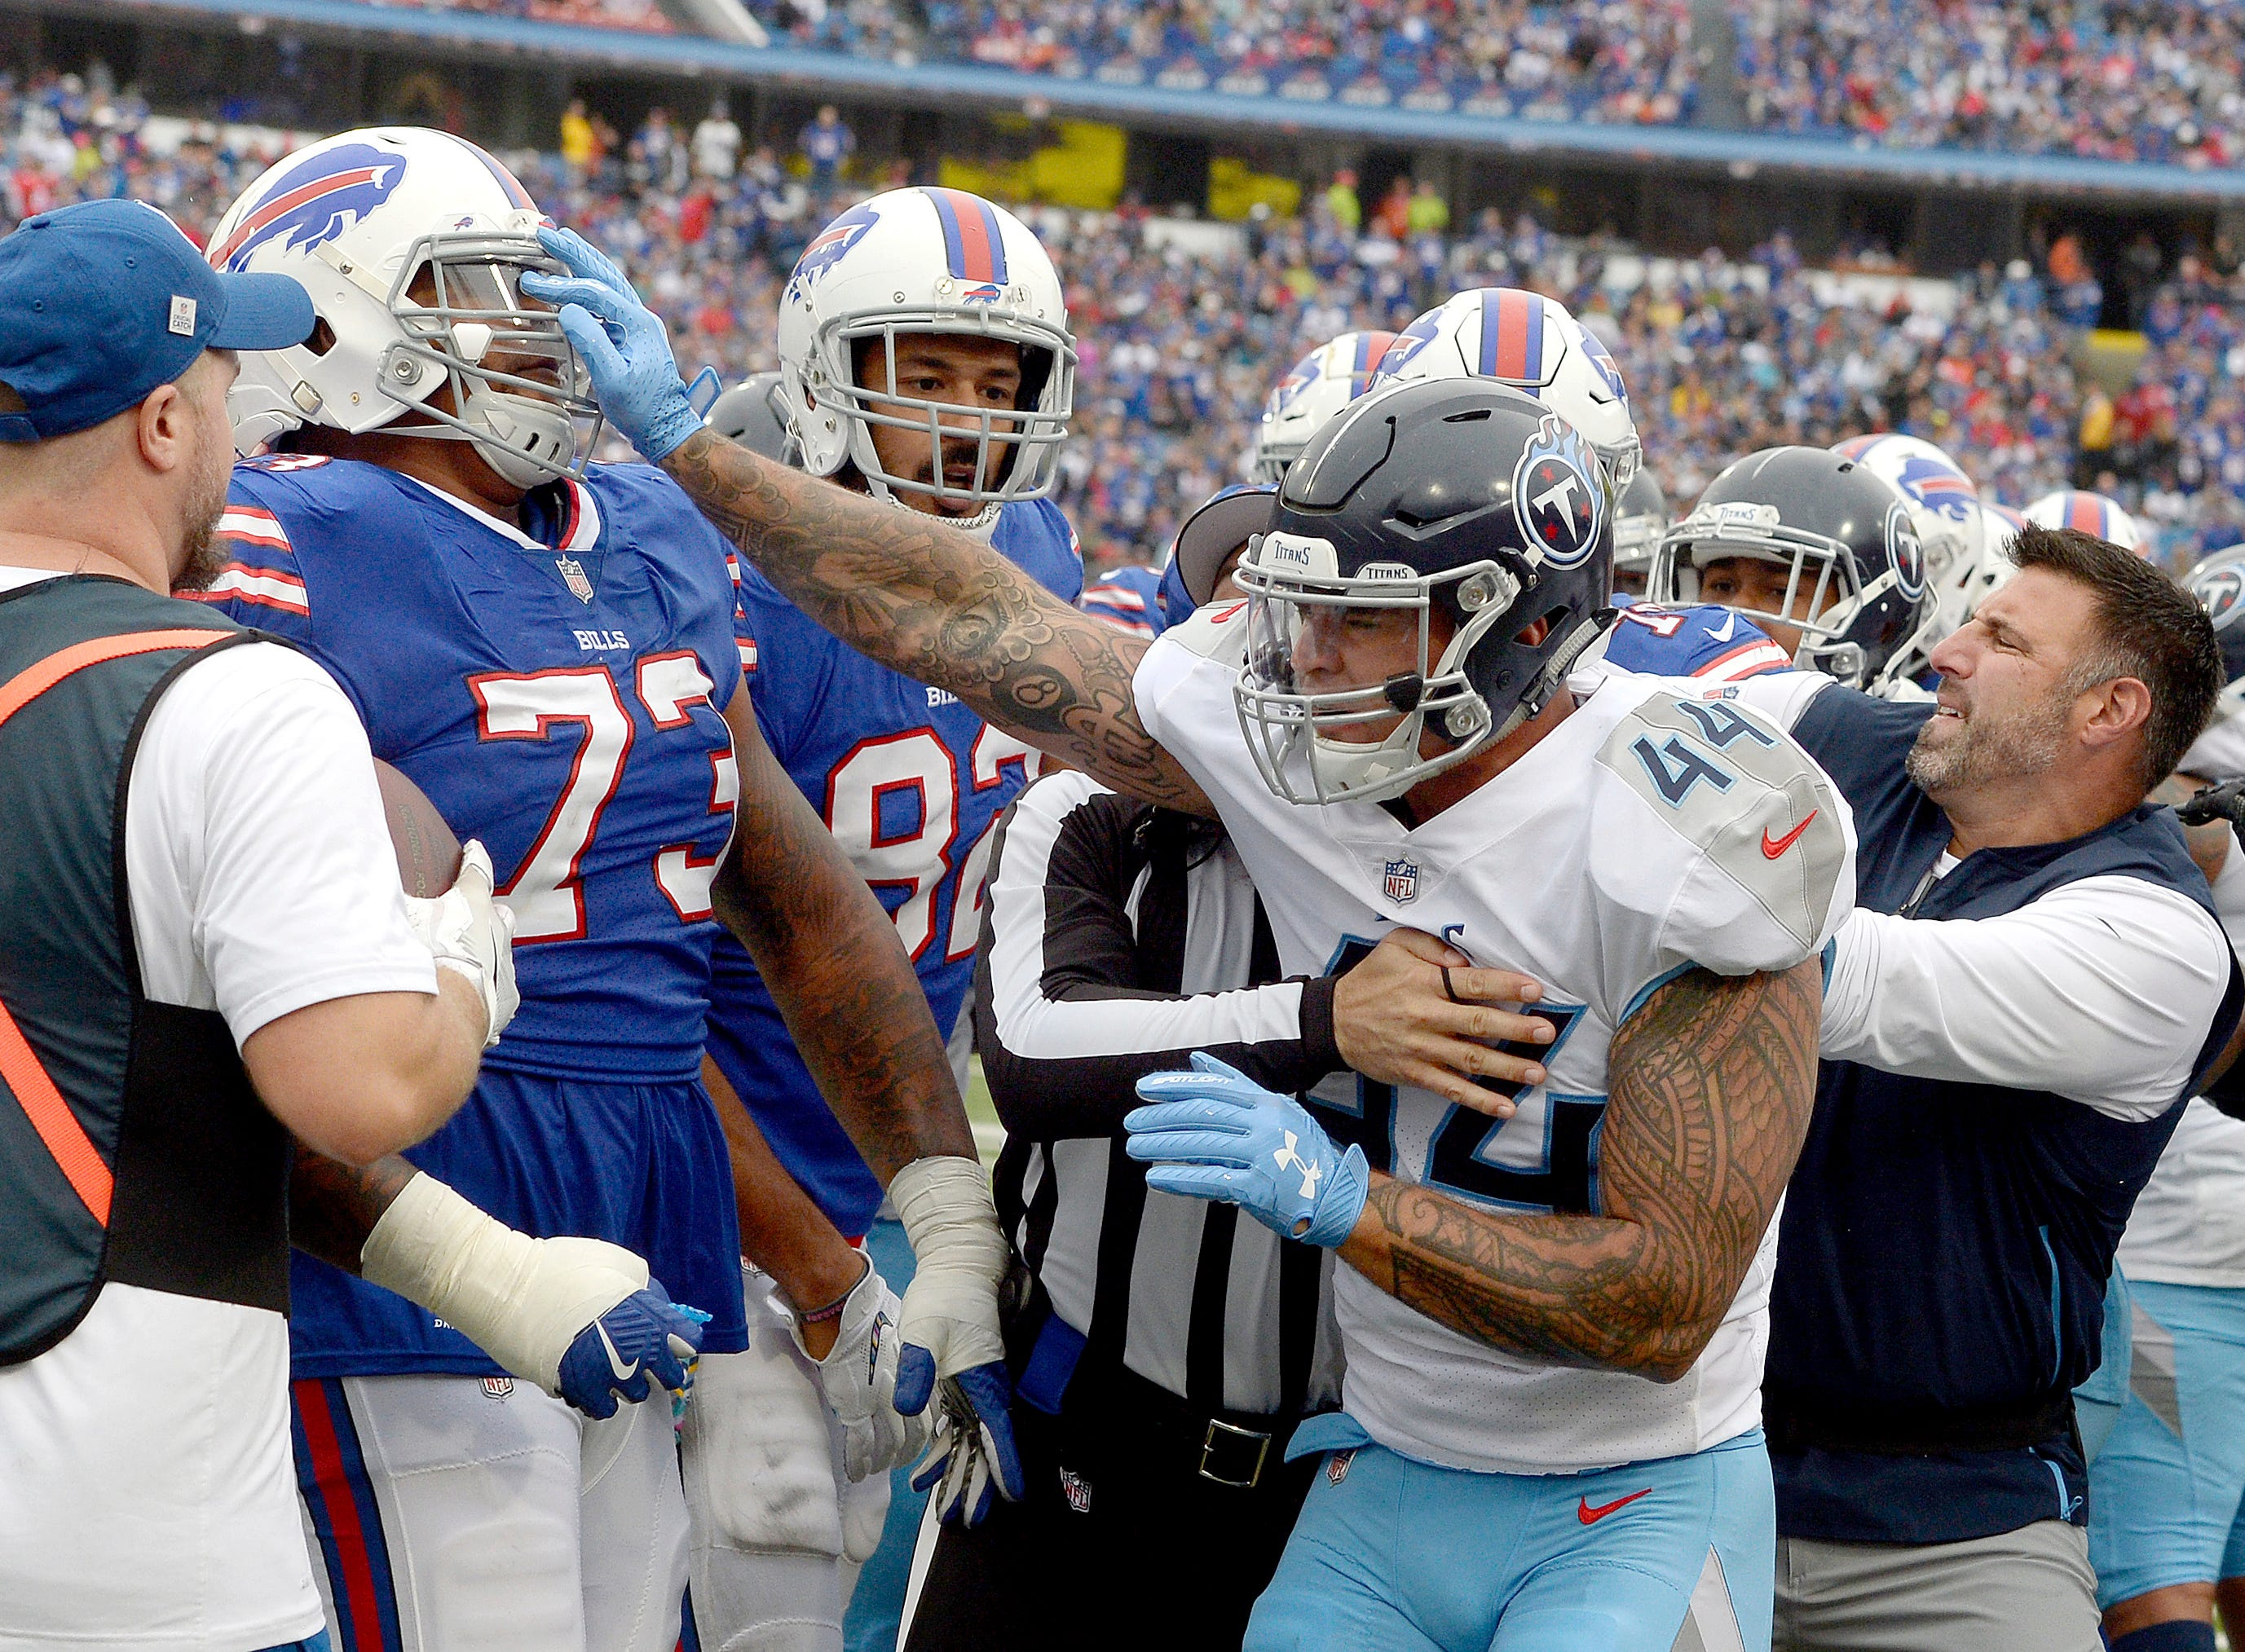 Oct. 14: Bills 13, Titans 12 --i Tennessee Titans head coach Mike Vrabel, right, tries to break up a fight between Titans' linebacker Kamalei Correa (44) and Buffalo Bills offensive tackle Dion Dawkins (73) during the second half of an NFL football game, Sunday, Oct. 7, 2018, in Orchard Park, N.Y. (AP Photo/Adrian Kraus)